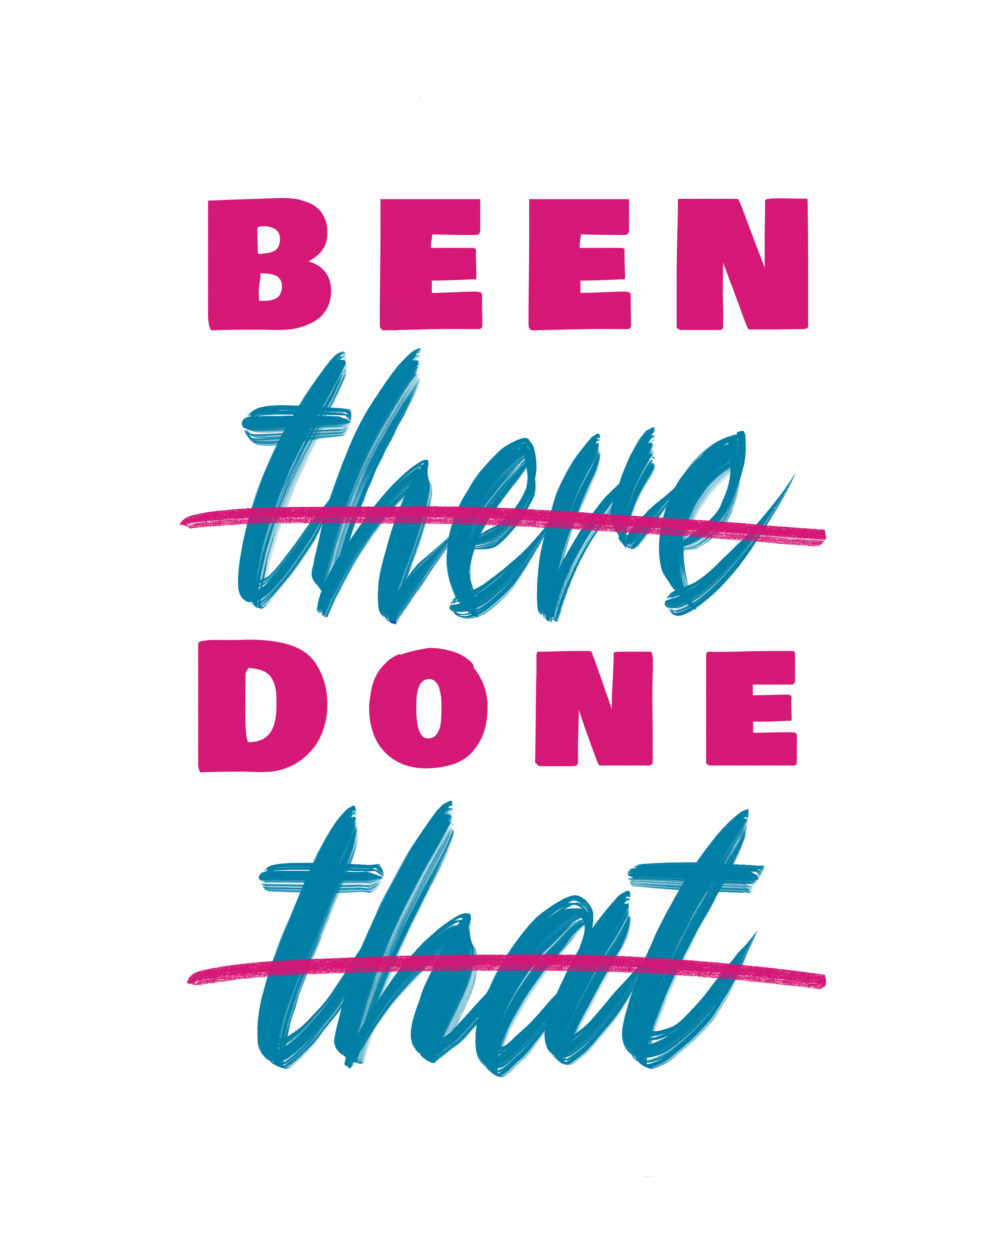 Been there Done that - hand lettering artwork for t-shirts, posters, or framed prints